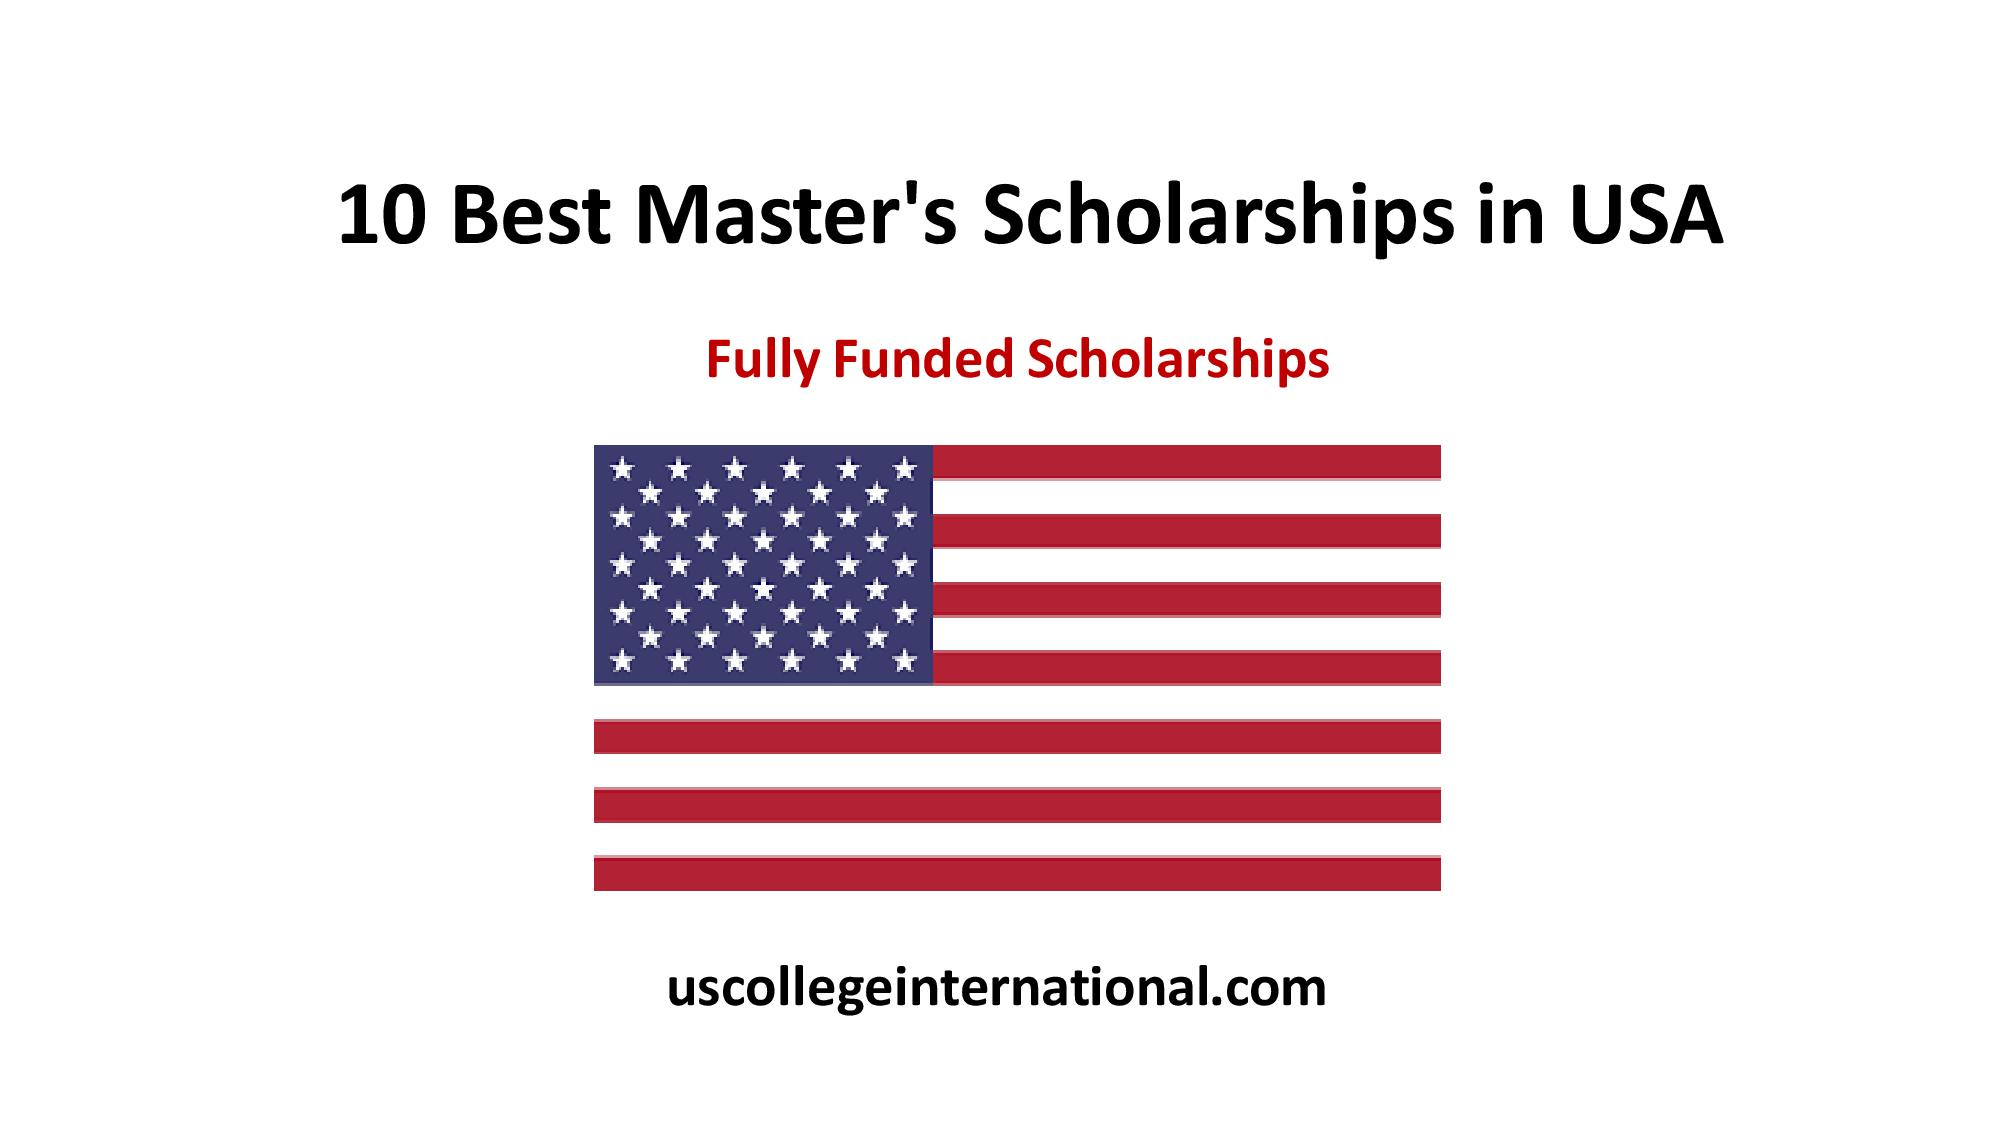 10 Best Masters Scholarships USA - Global Scholarships